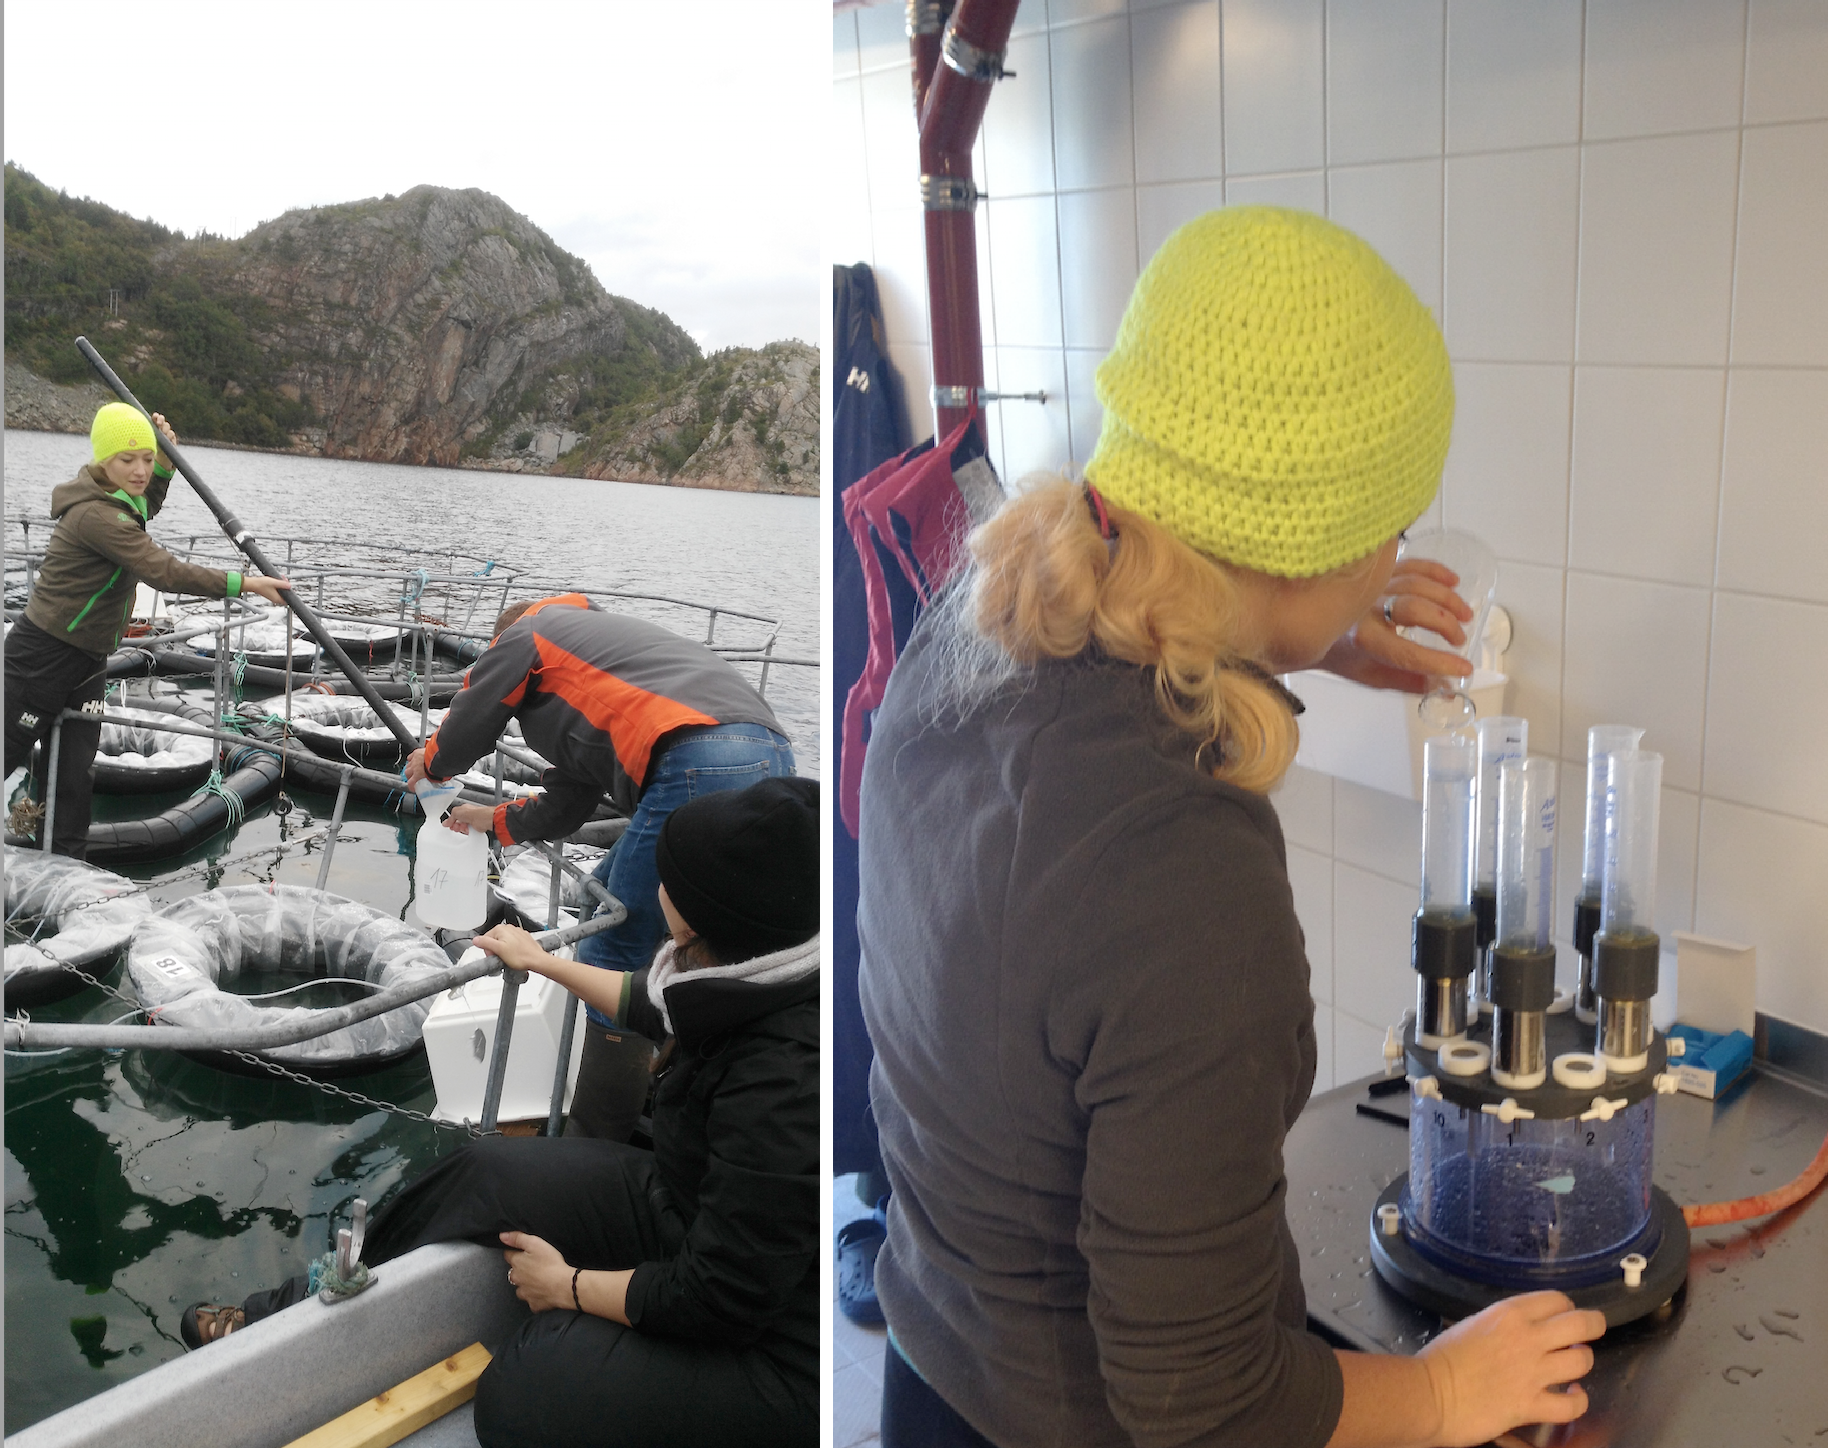 Pictures 5 : Tube sampler (left) and filtration units (right) used to collect and process samples to further study the dynamics of planktonic organisms (phytopankton, bacteria). © M. Stockenreiter, Luna Benitez Requena, Sabine Schultes and Patrick Fink